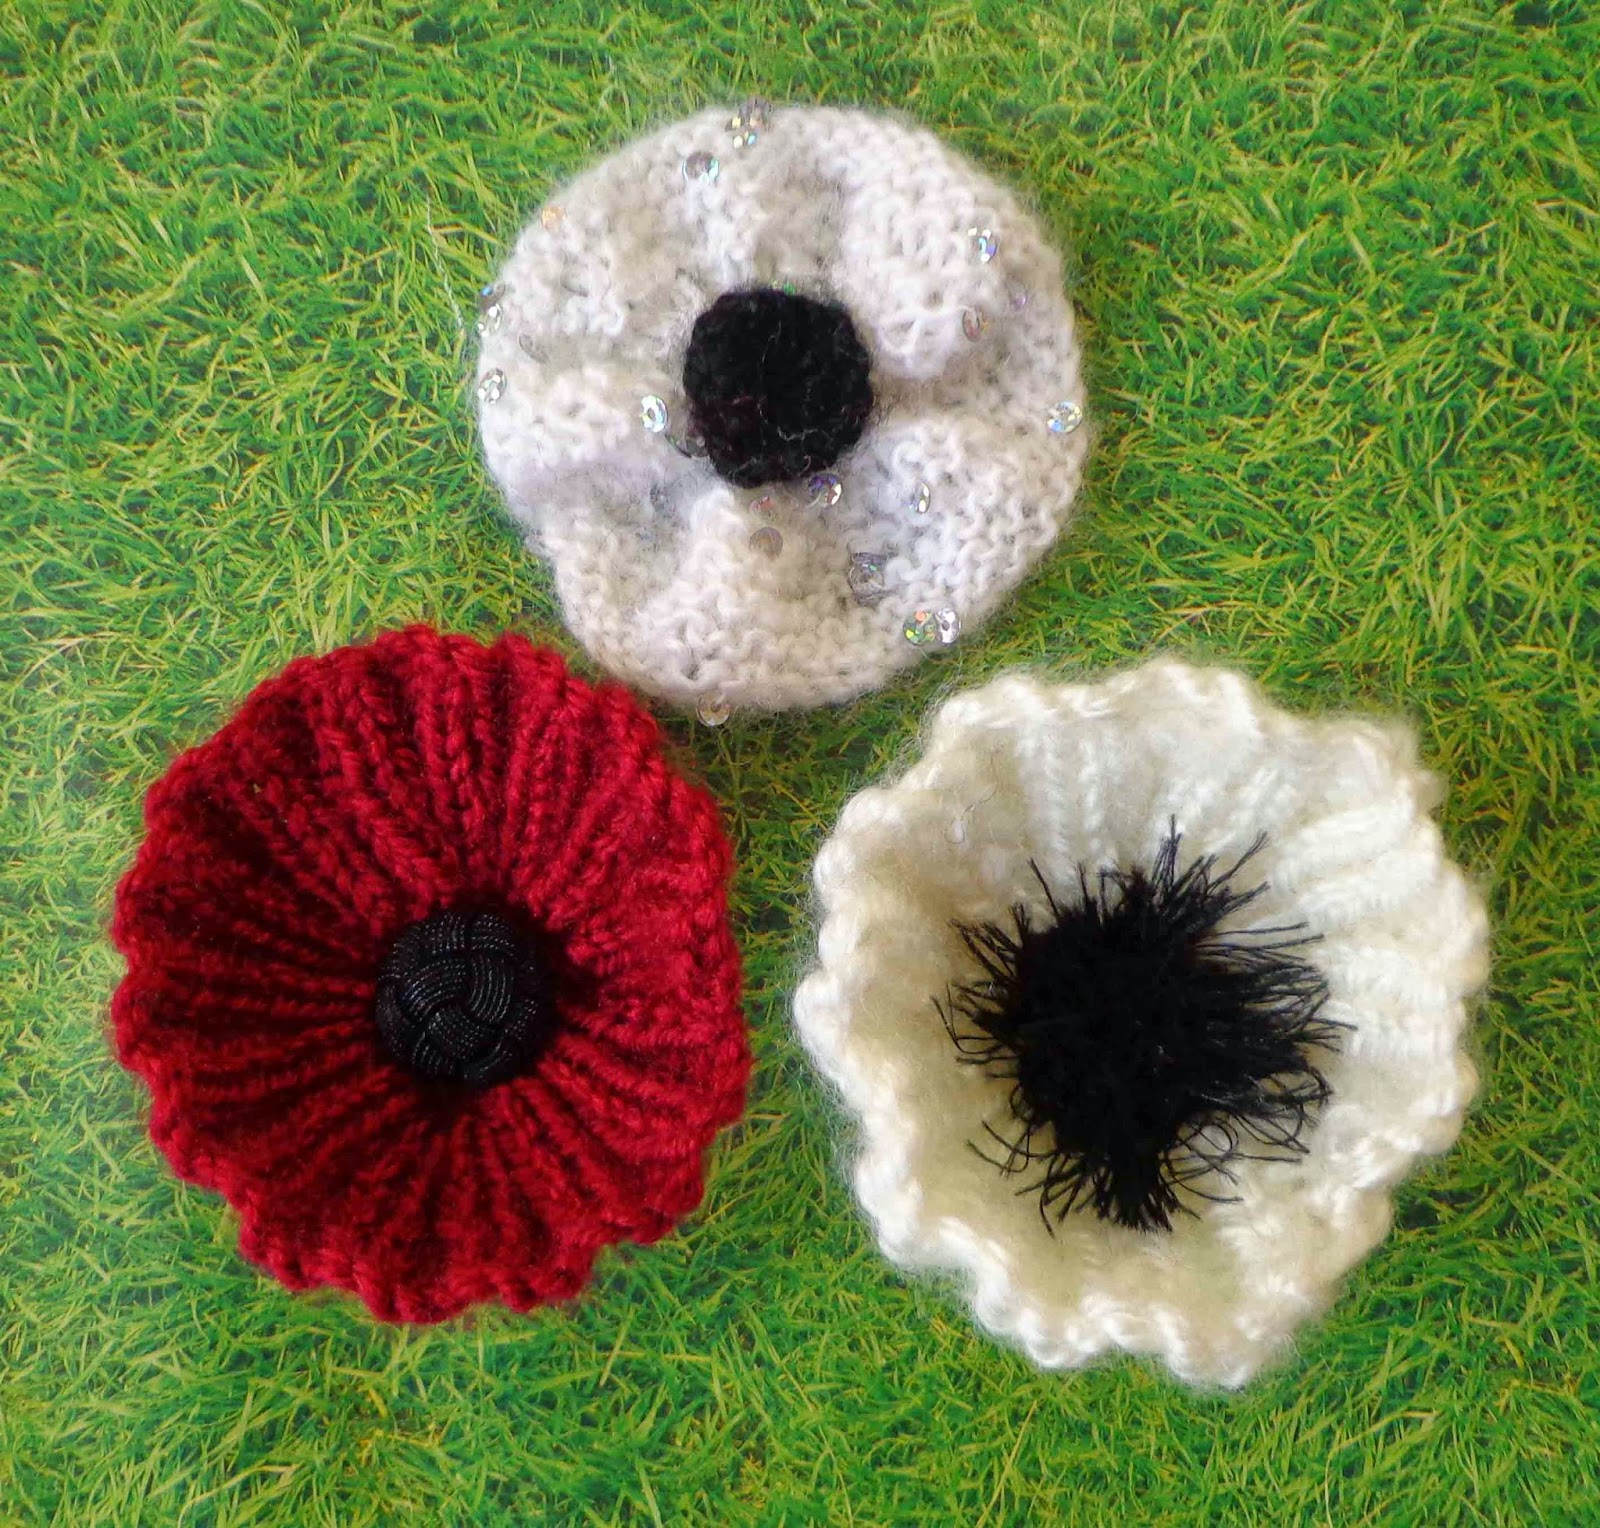 Knitting Pattern Red Poppy : Hippystitch: Poppies in the Park Knitting Patterns